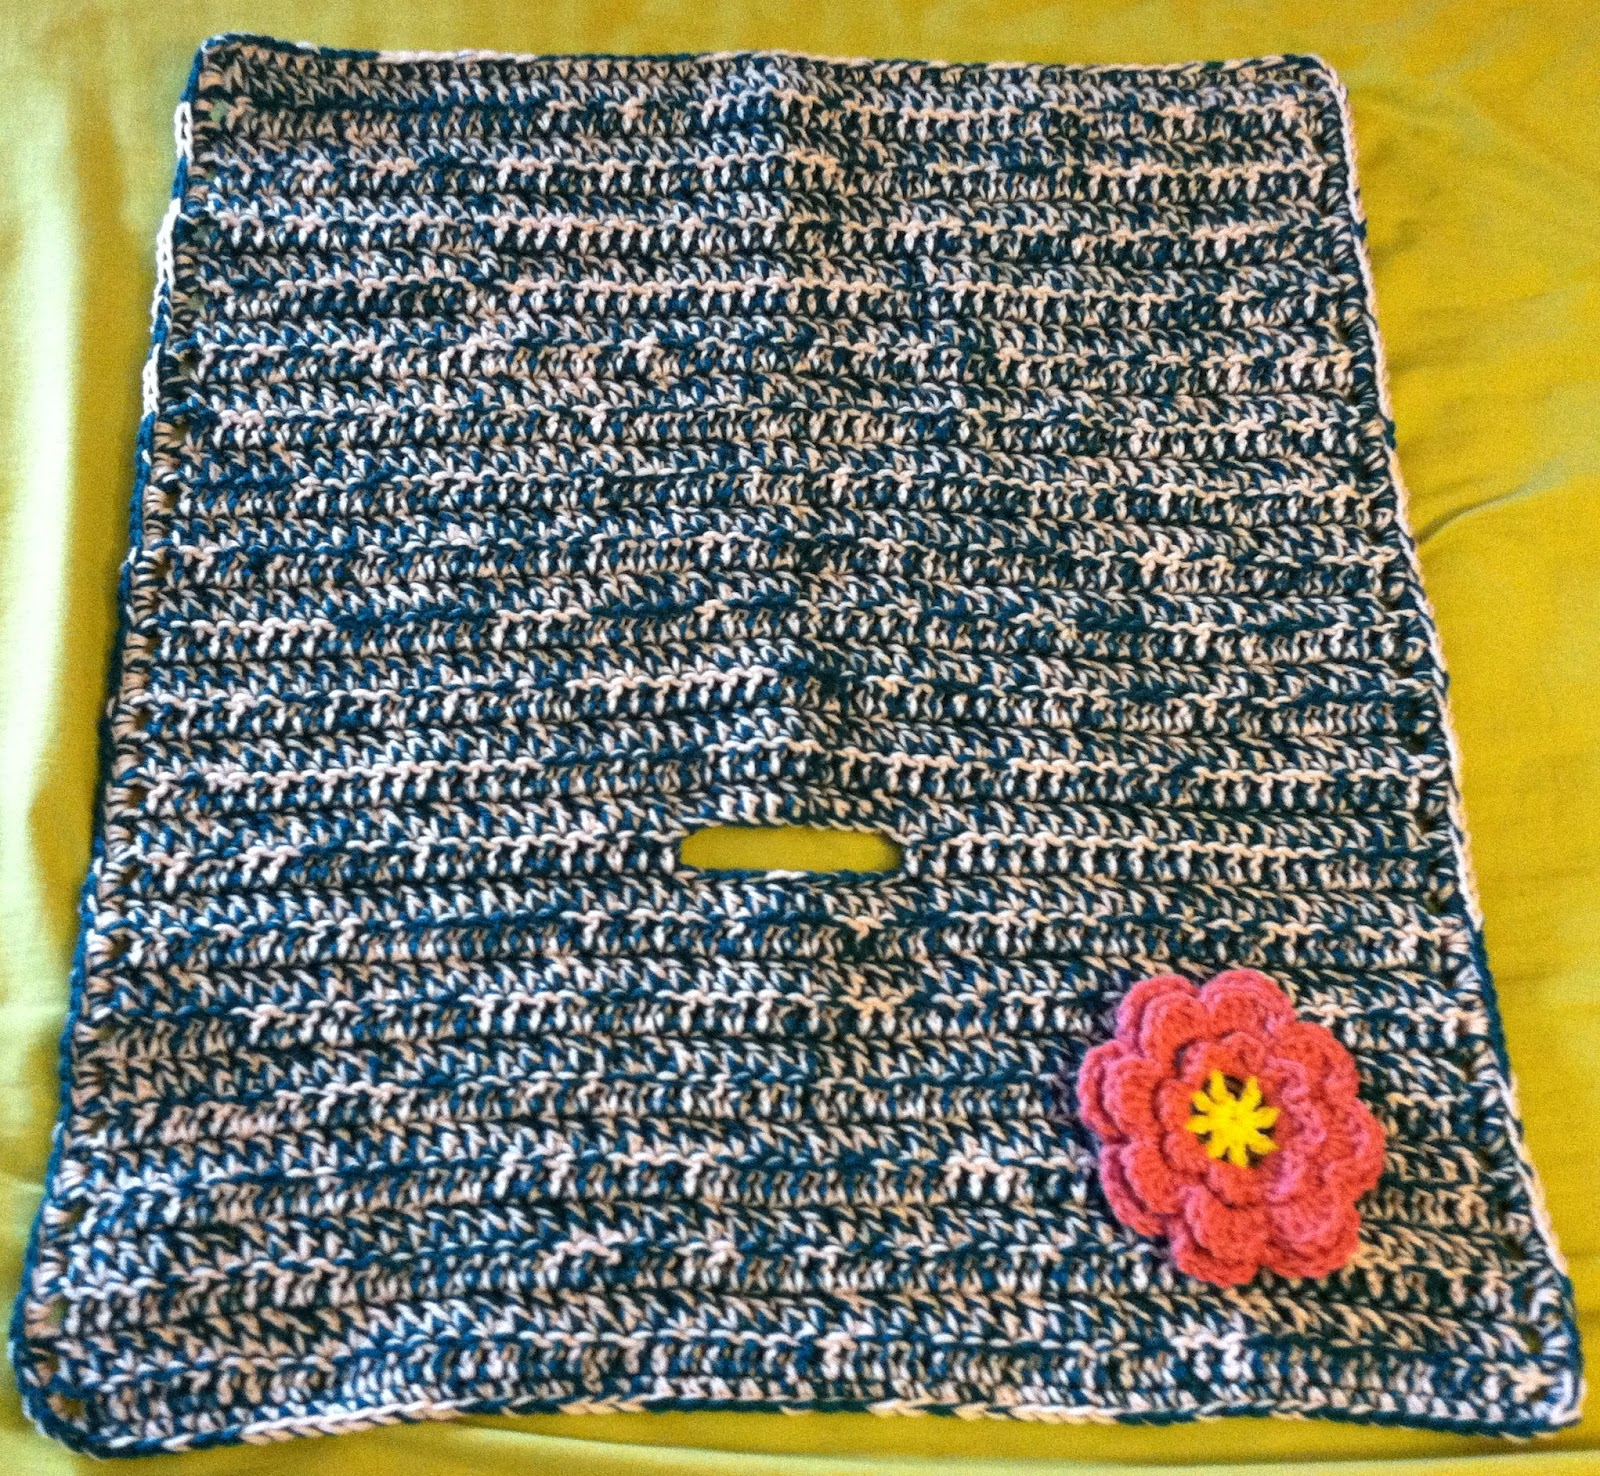 Crochet By Beth: Car Seat Blanket for Charity - Free Crochet Pattern